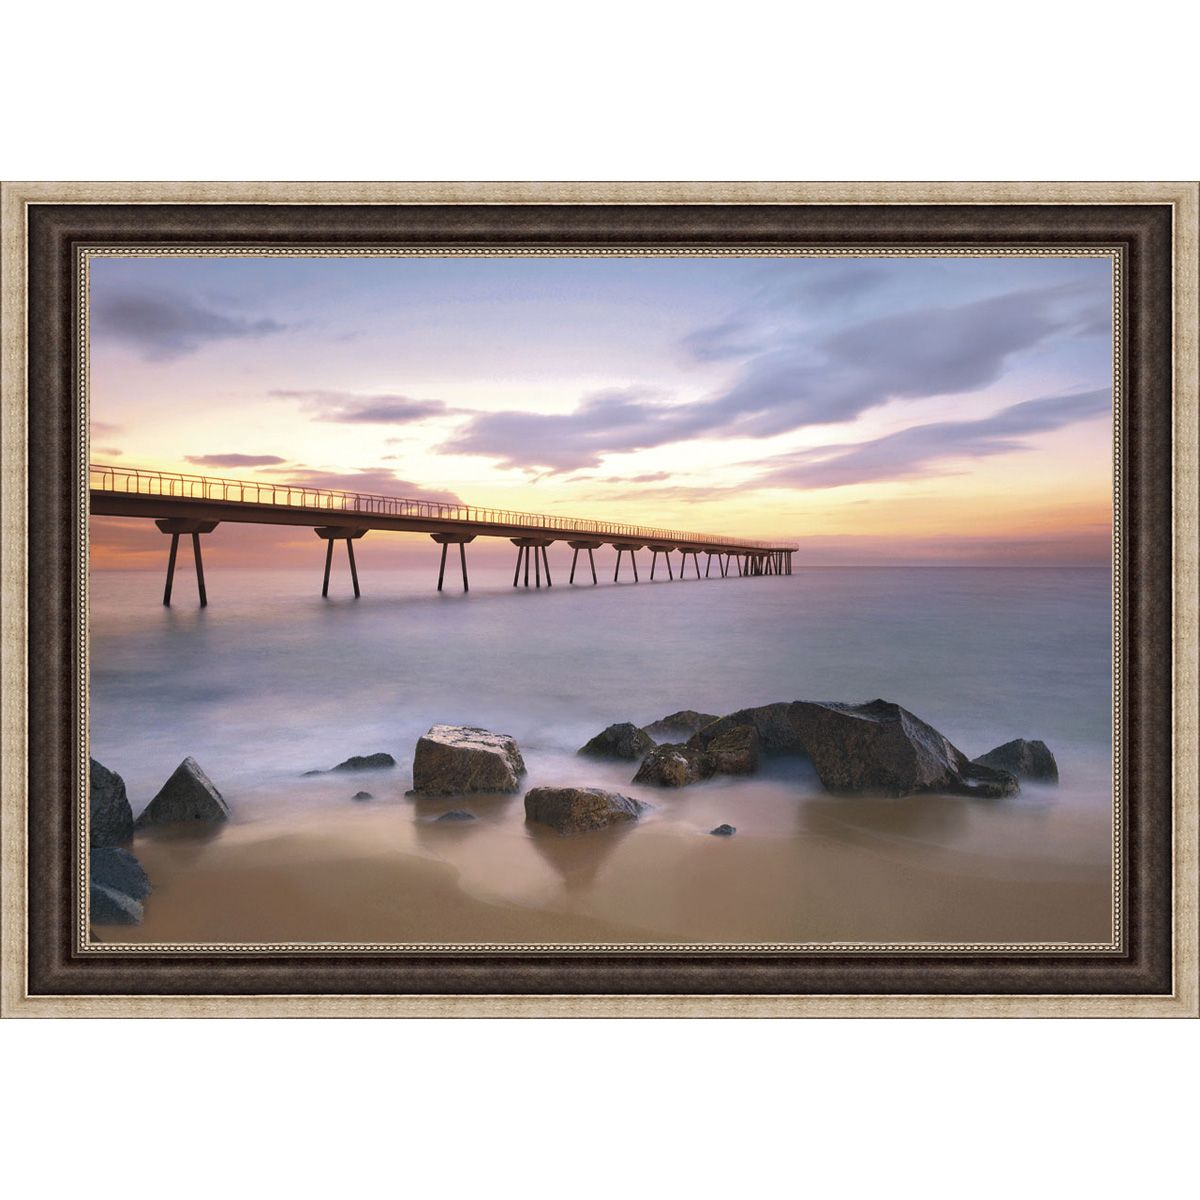 Sergi Mora 'The Pier' Framed Print